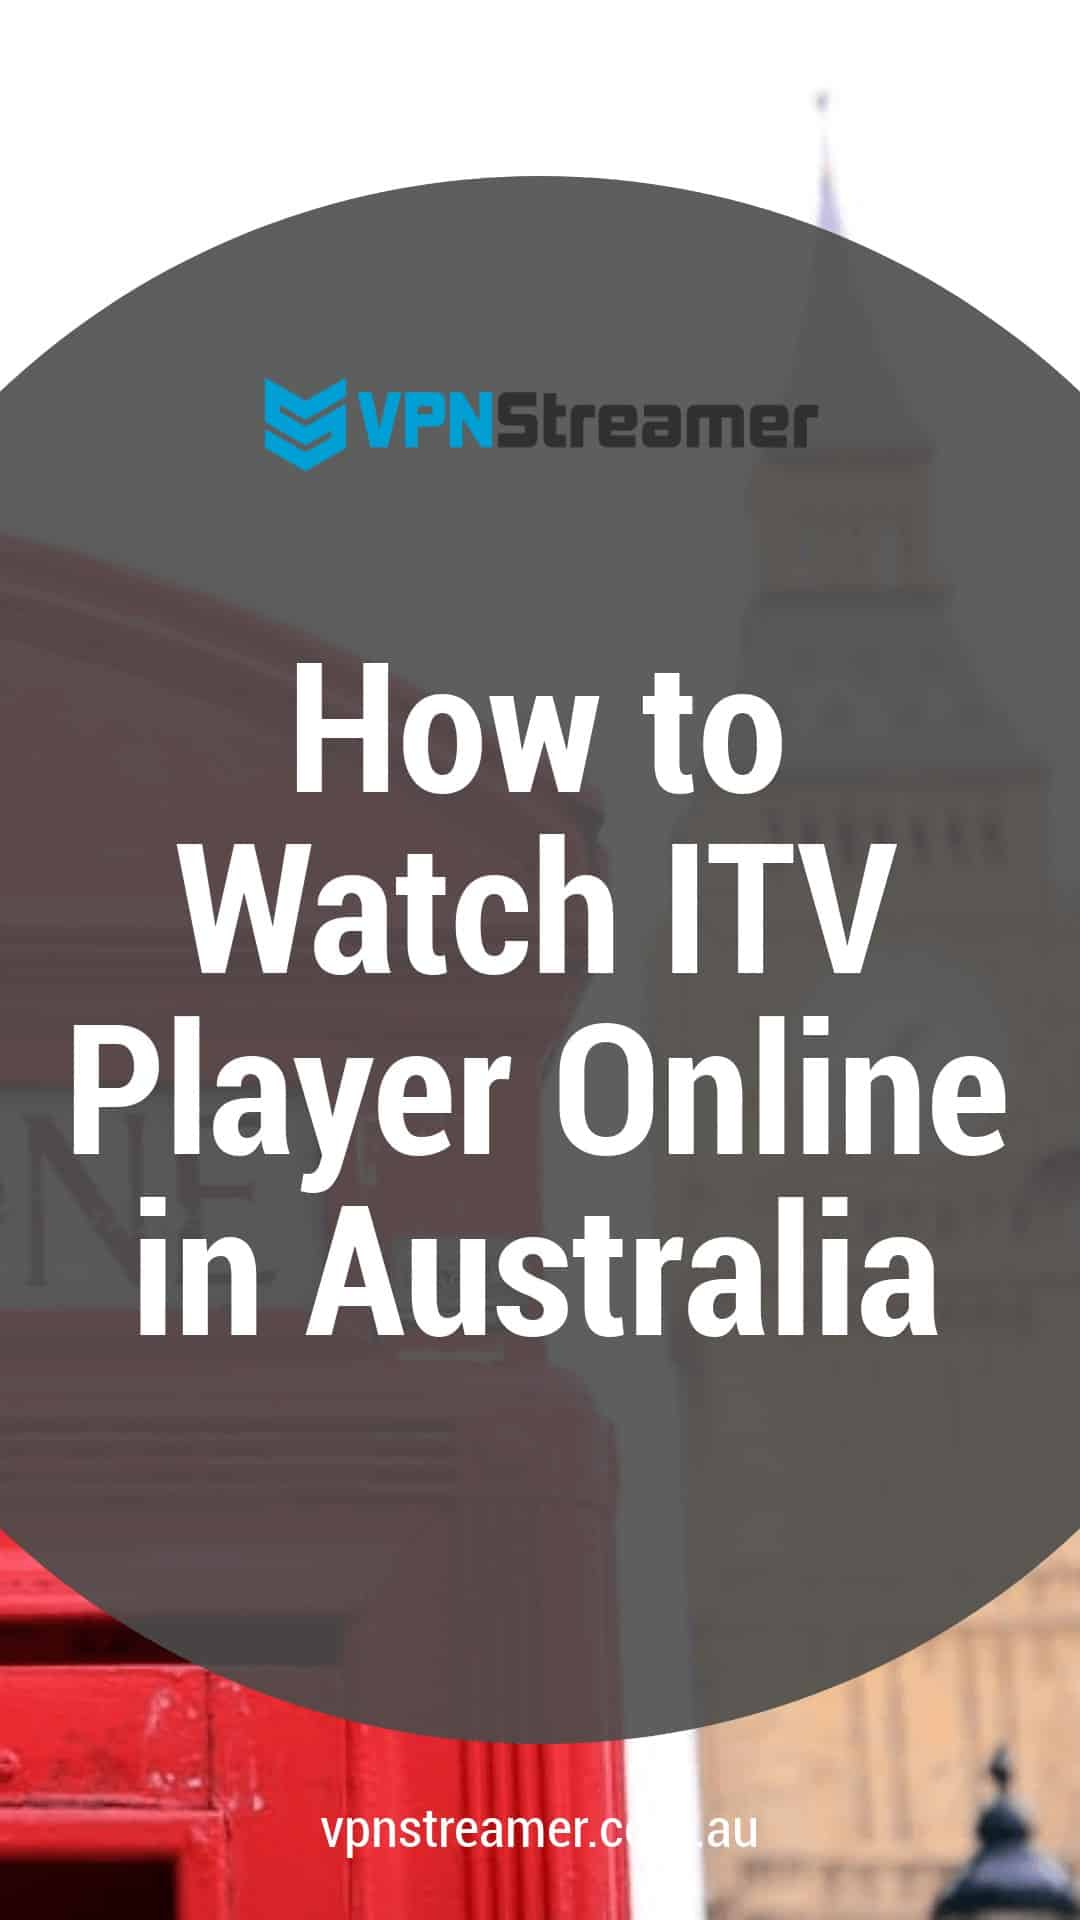 How to Watch ITV Player Online in Australia